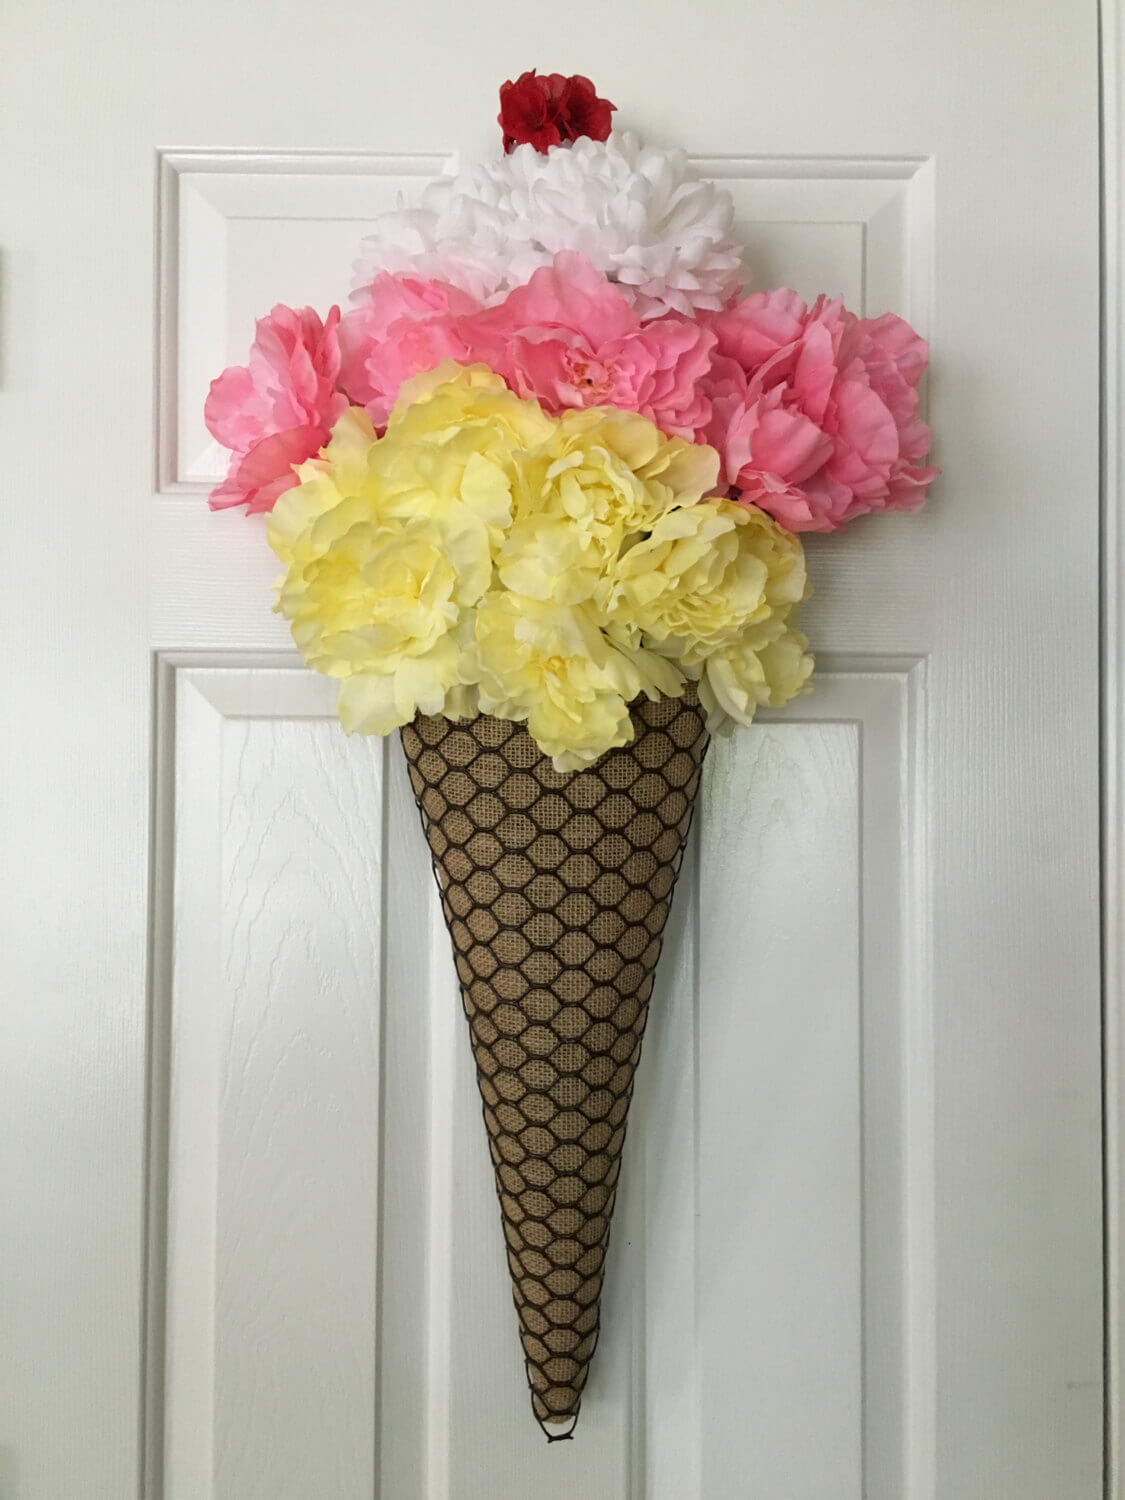 Funny Ice Cream Cone Wreath with Carnations